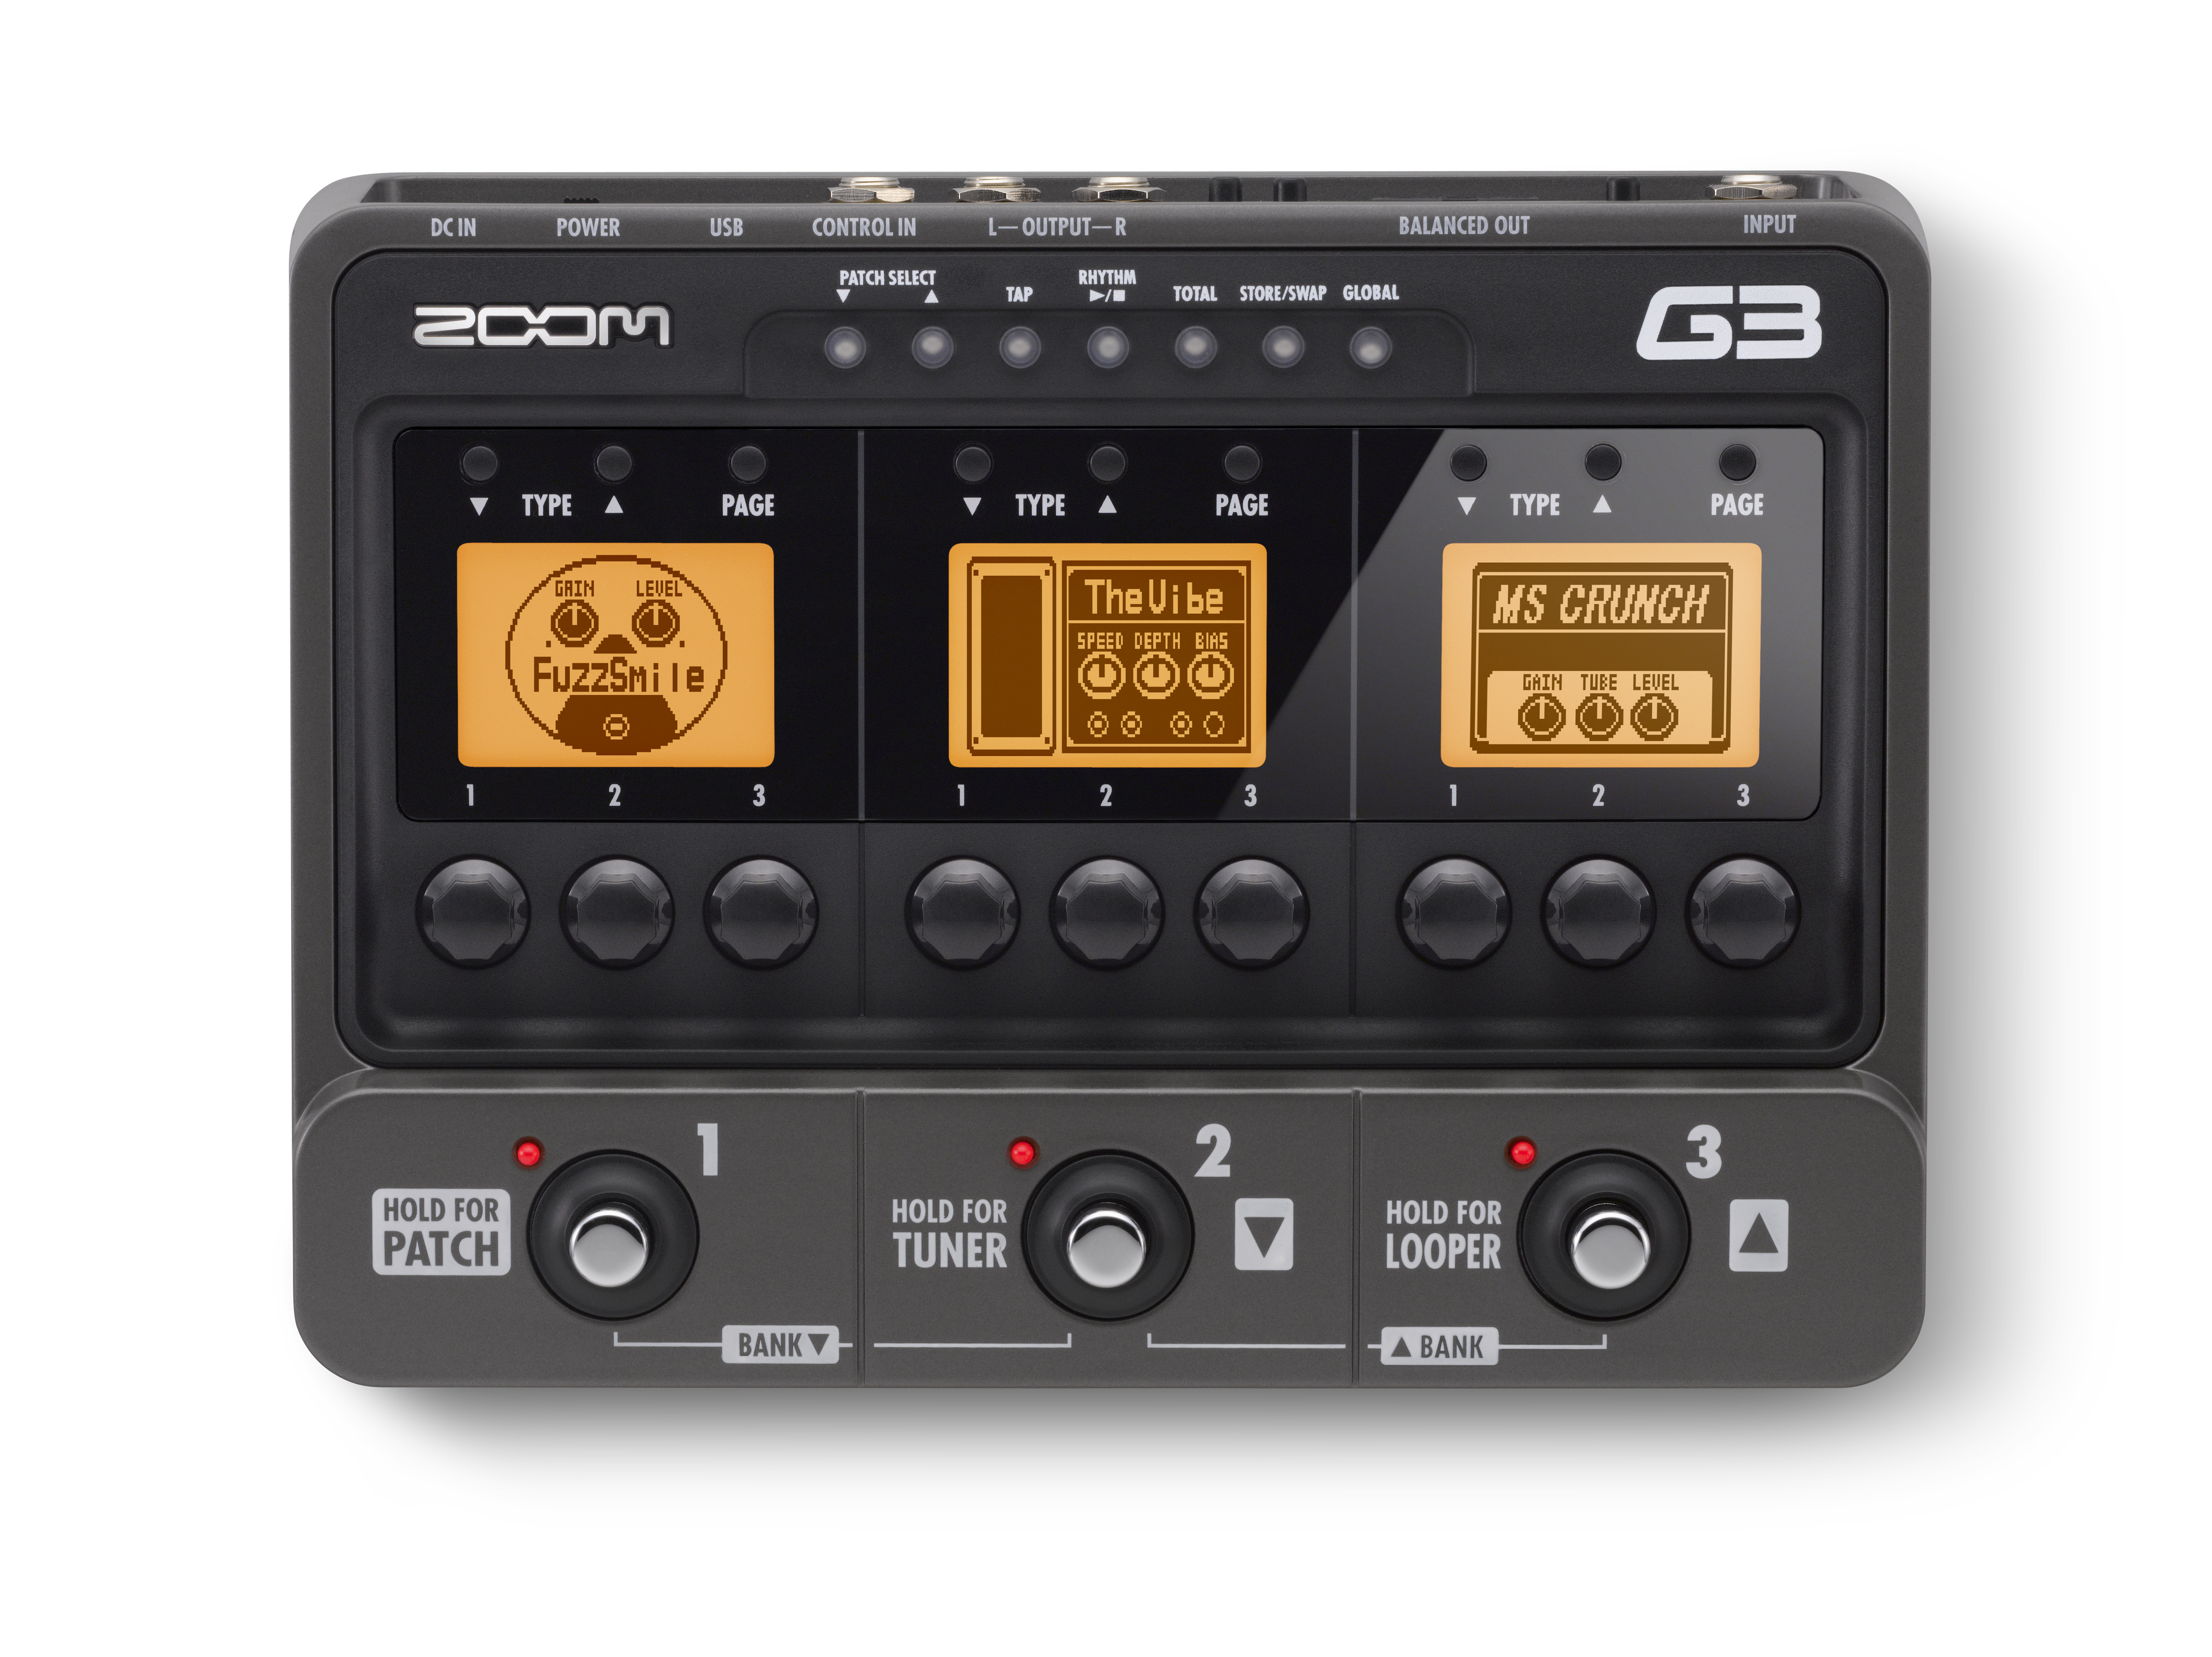 G3 Guitar Effects Amp Simulator Pedal Zoom Design A D Converter With The Following Required Characteristics Images